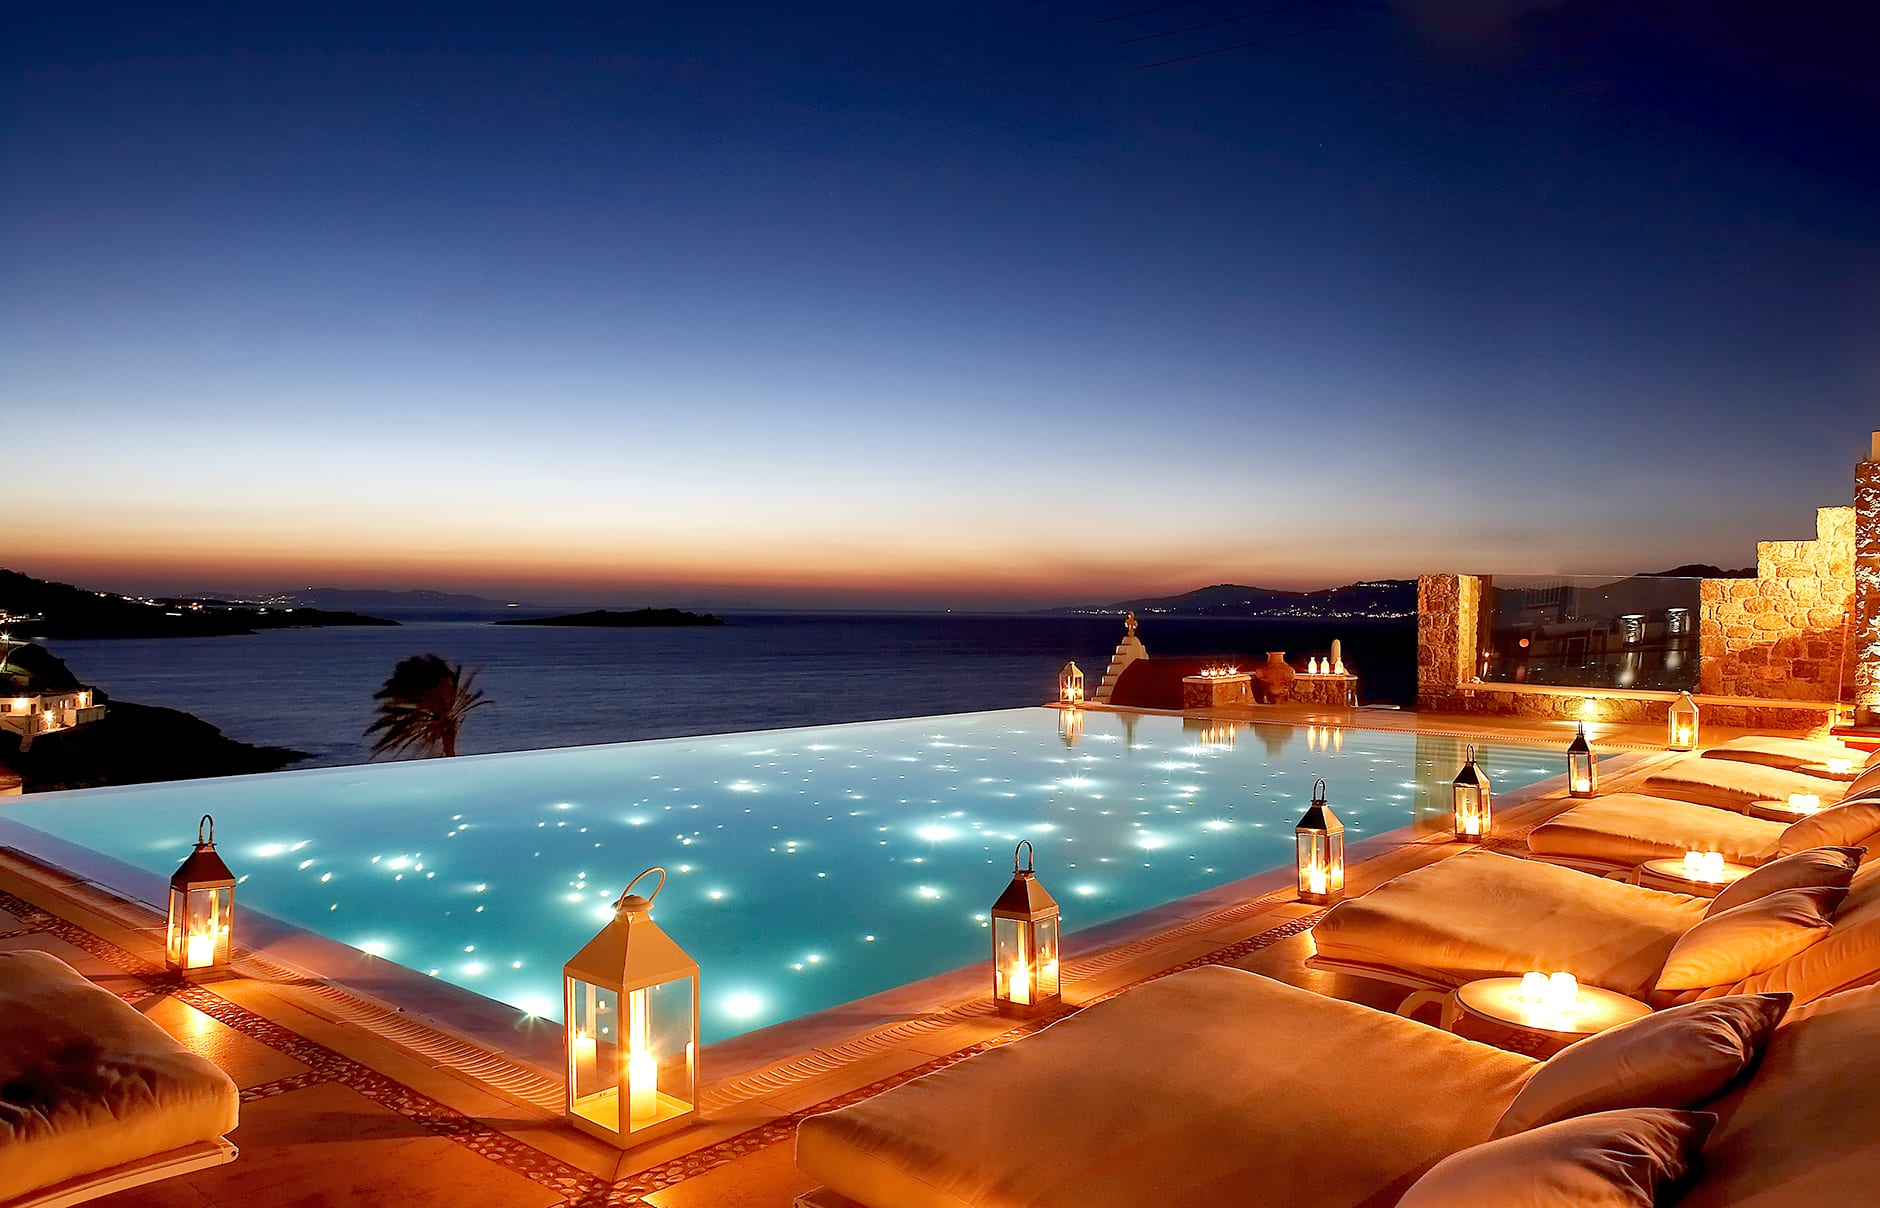 Bill coo mykonos luxury hotels travelplusstyle for Hotels in santorini with infinity pools